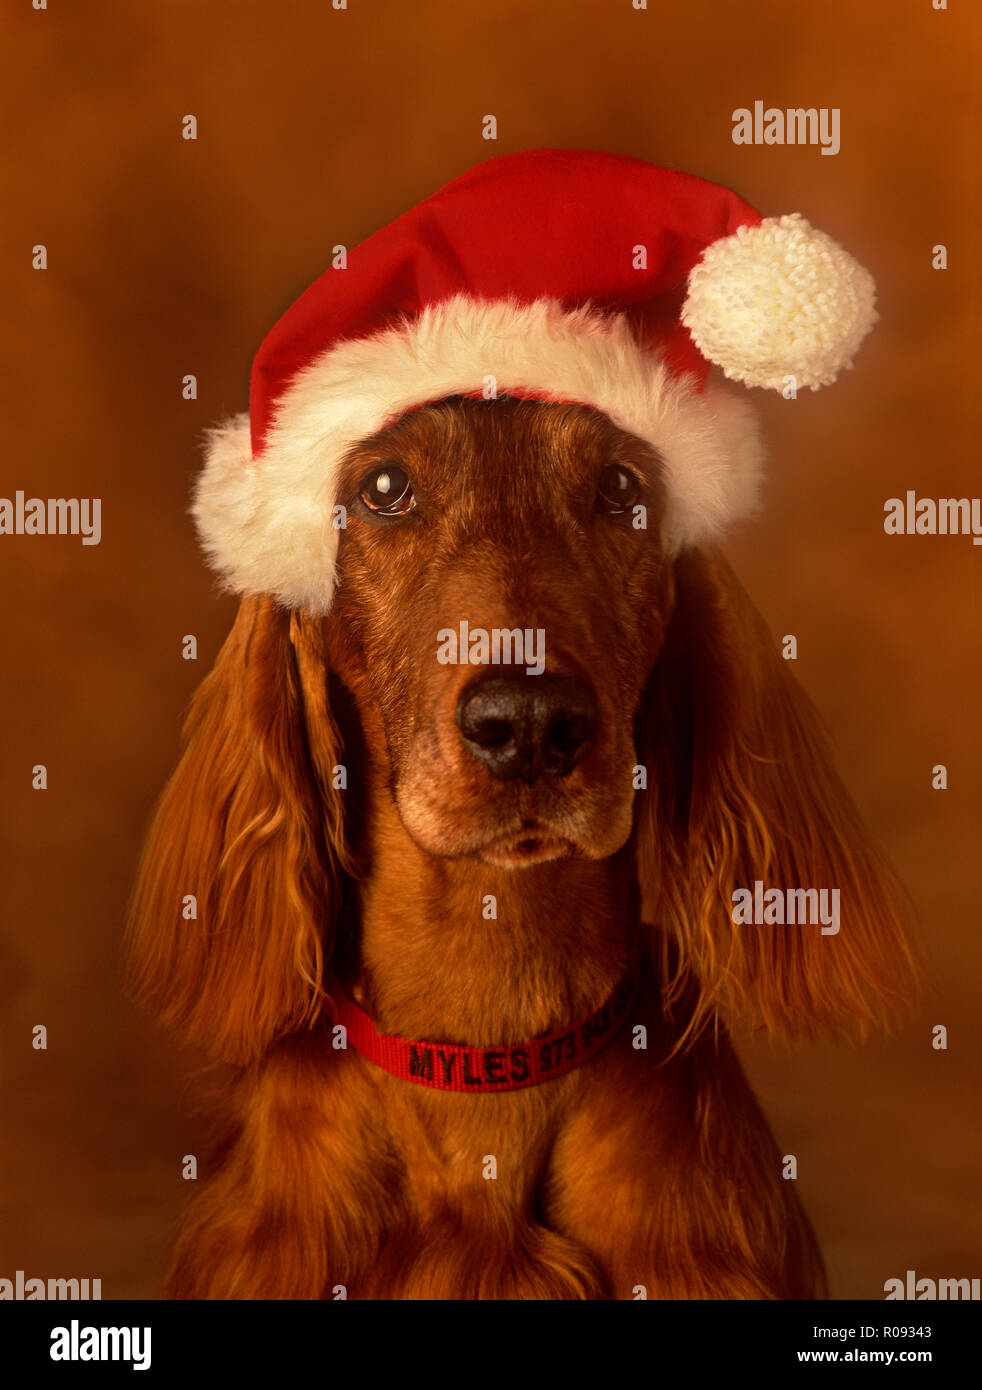 Irish Setter wearing a Santa hat against a very soft background looking straight at camera Stock Photo